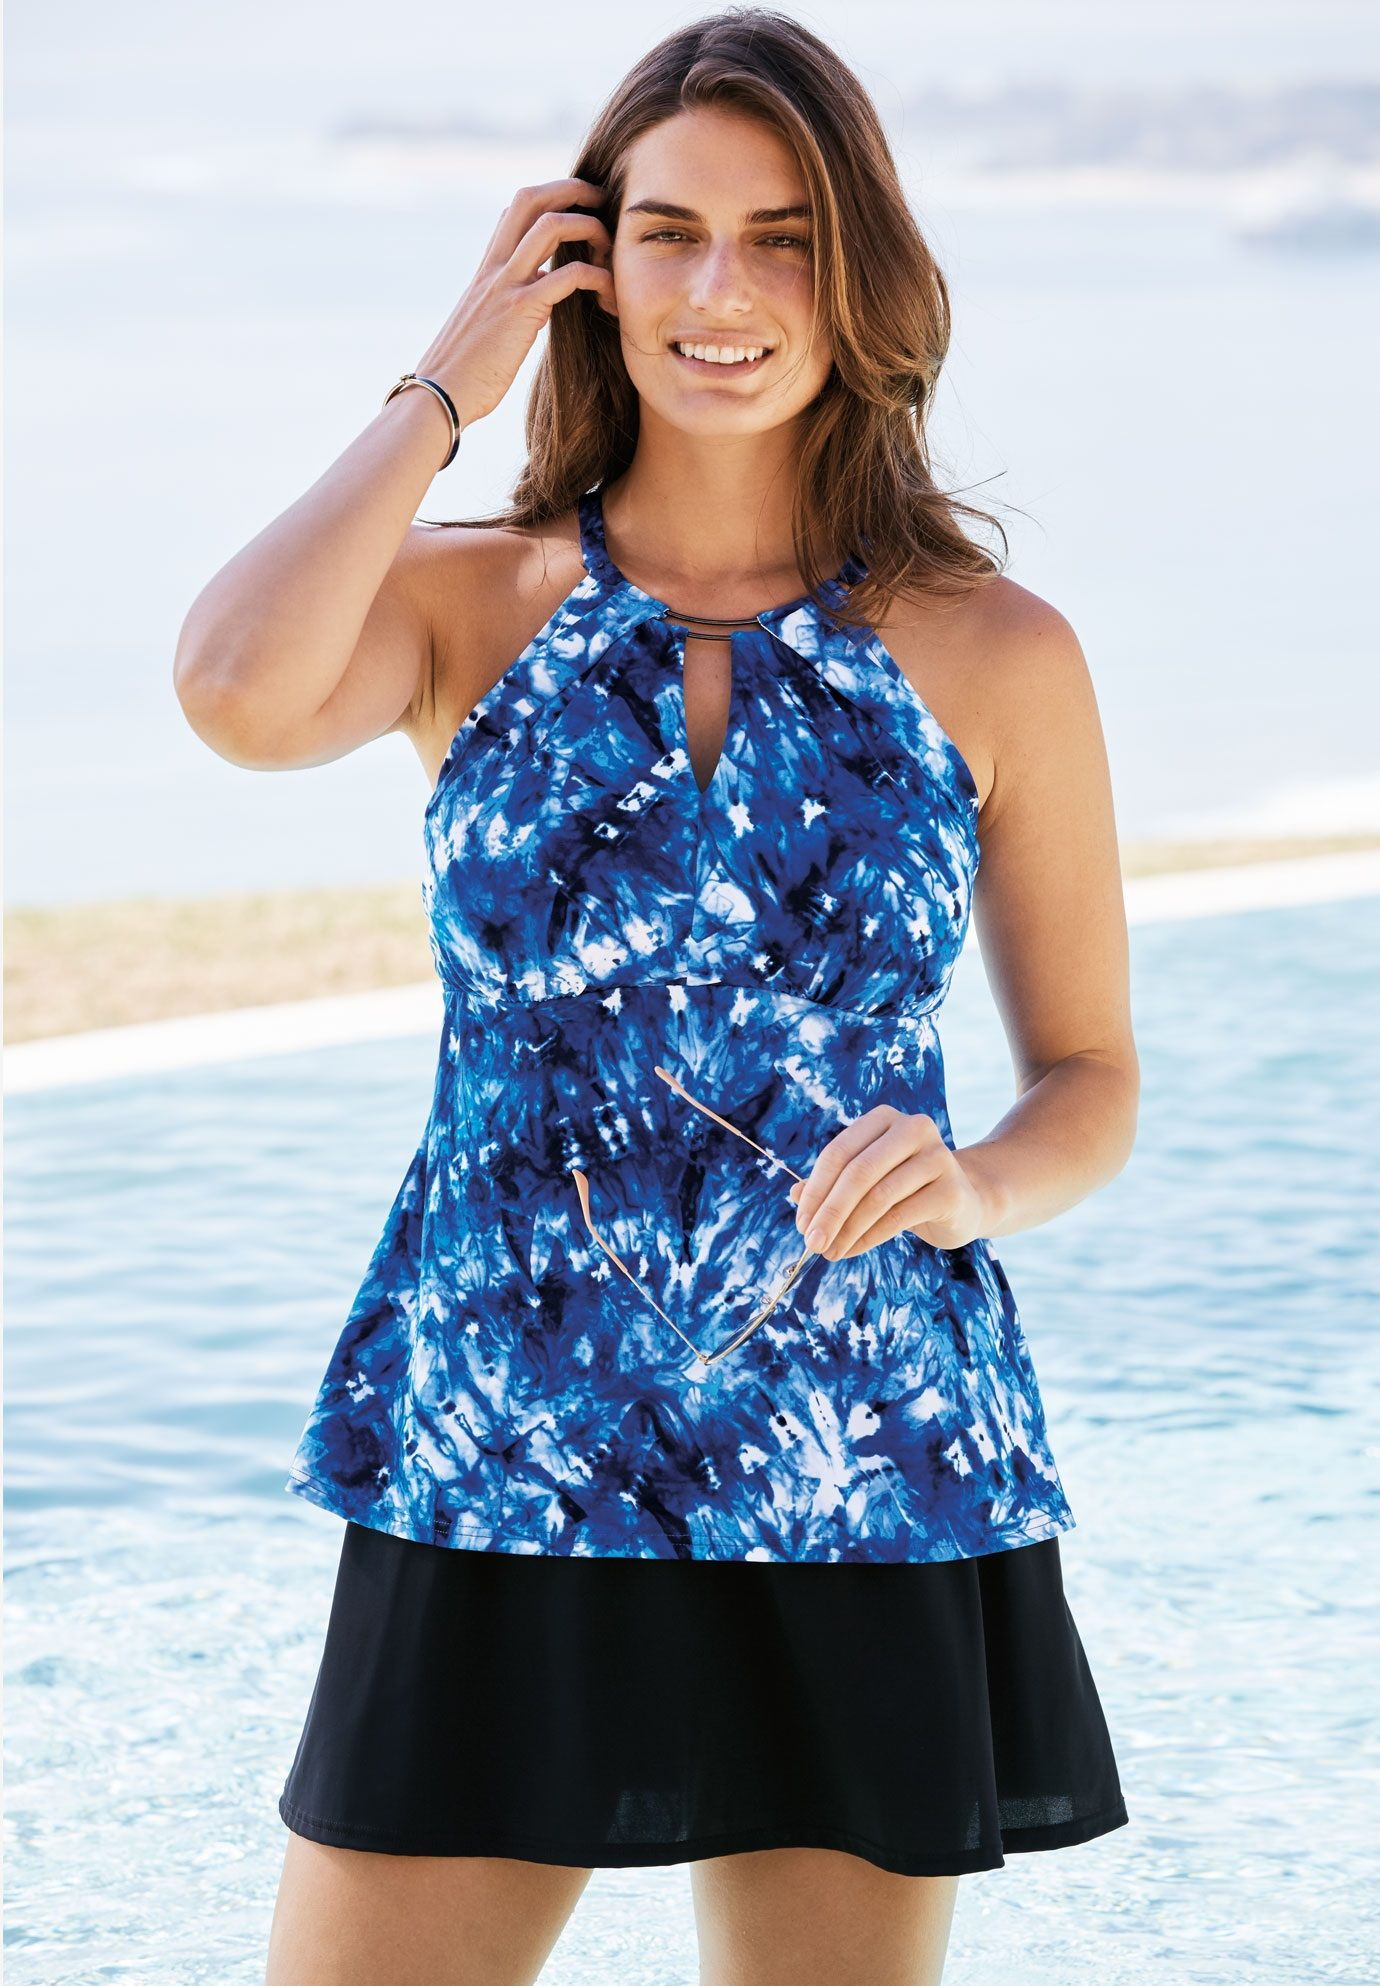 96852162c9 Keyhole Tankini Swim Top - Women's Plus Size Clothing | Products in ...